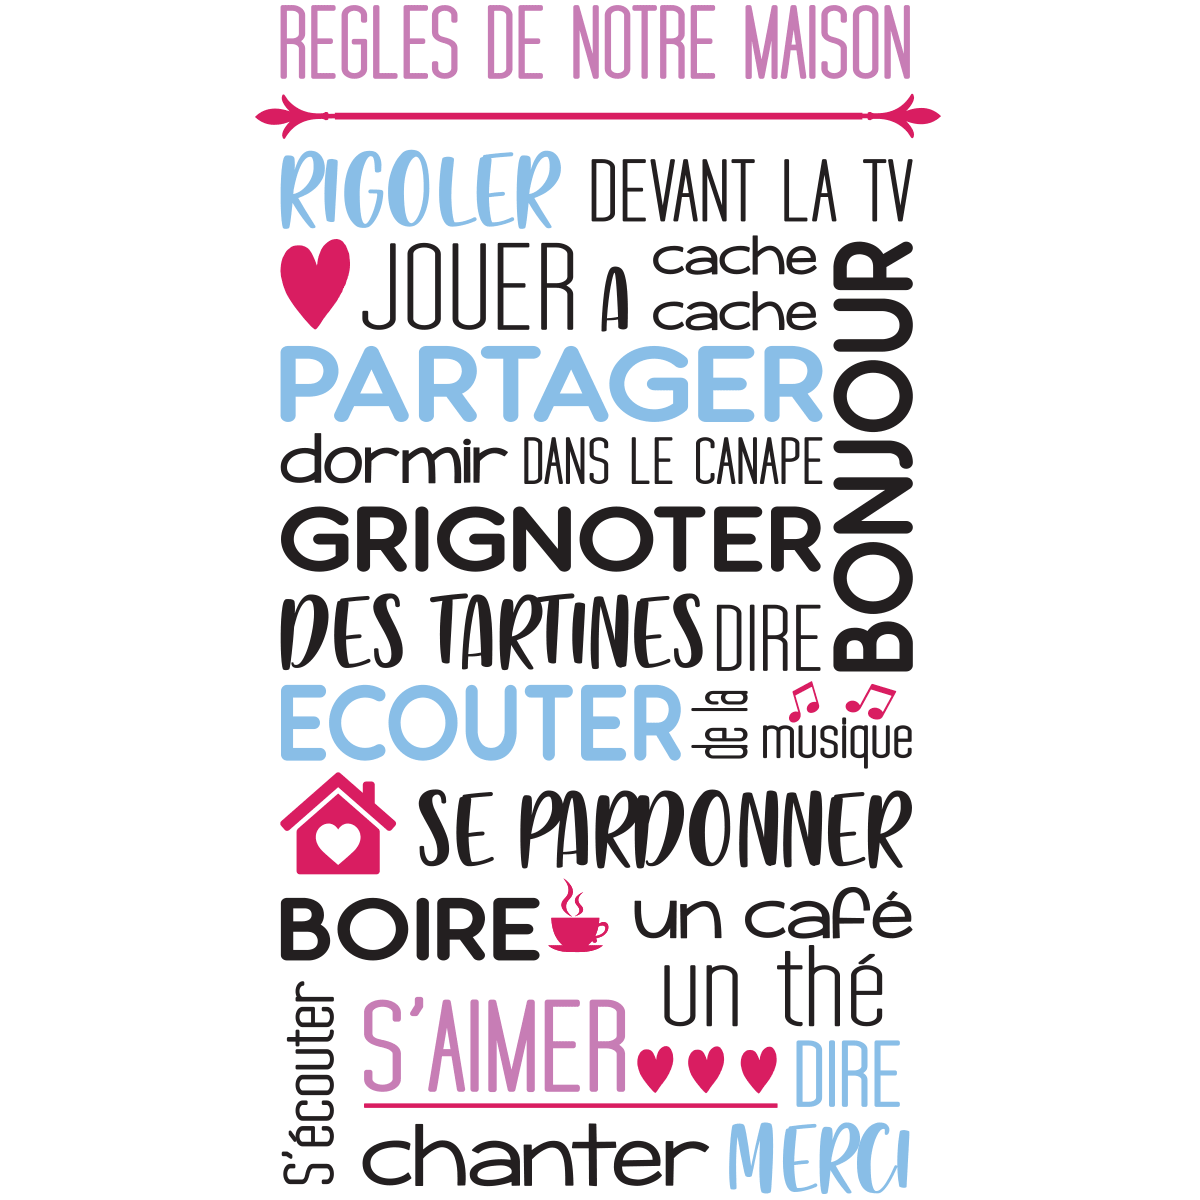 stickers citation r gles de notre maison en couleur stickers citations fran ais ambiance sticker. Black Bedroom Furniture Sets. Home Design Ideas